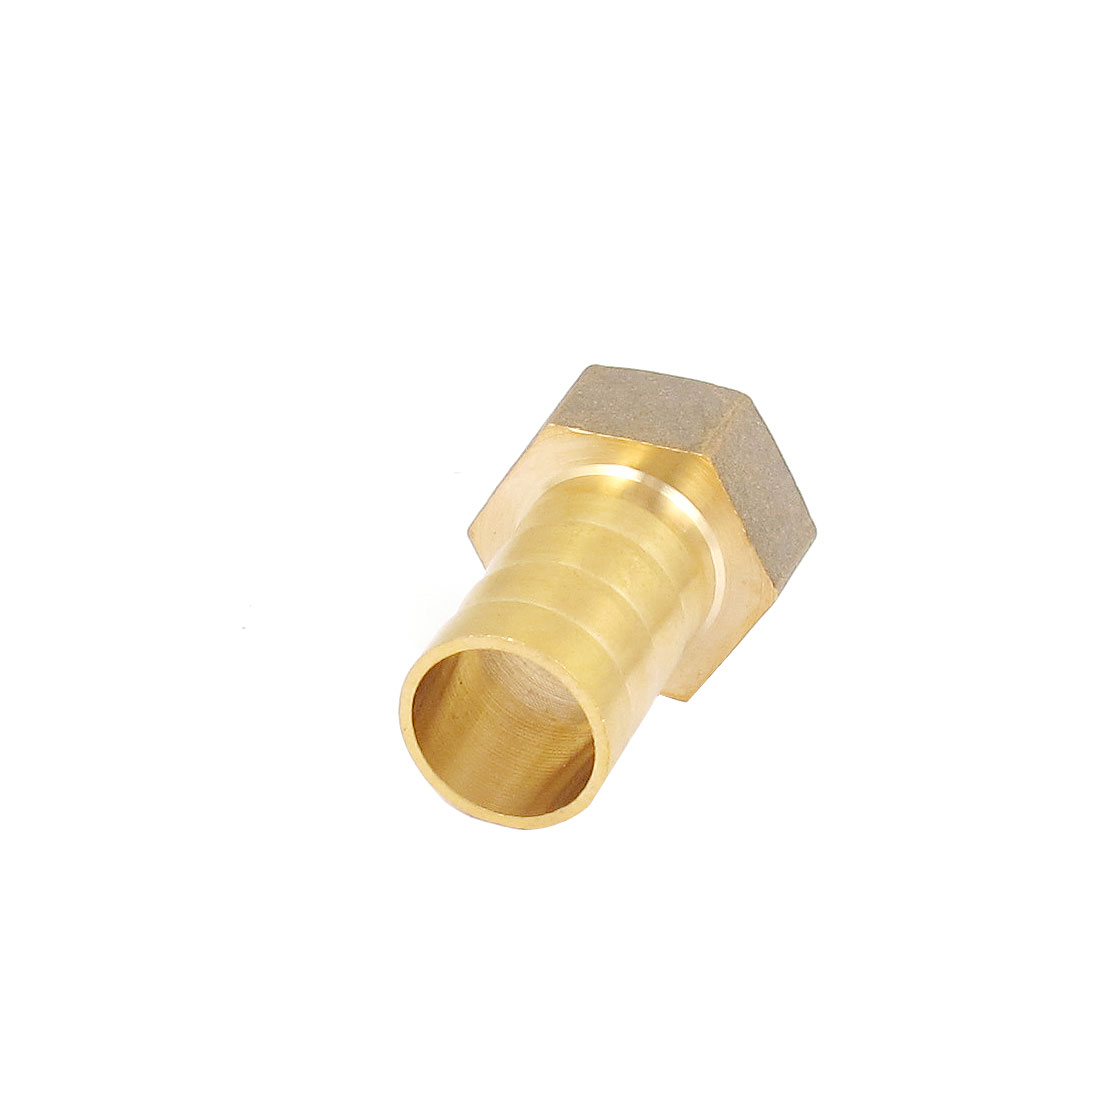 Brass 1.5cm Hose Barb 1/2BSP Female Thread Quick Joint Connector Adapter